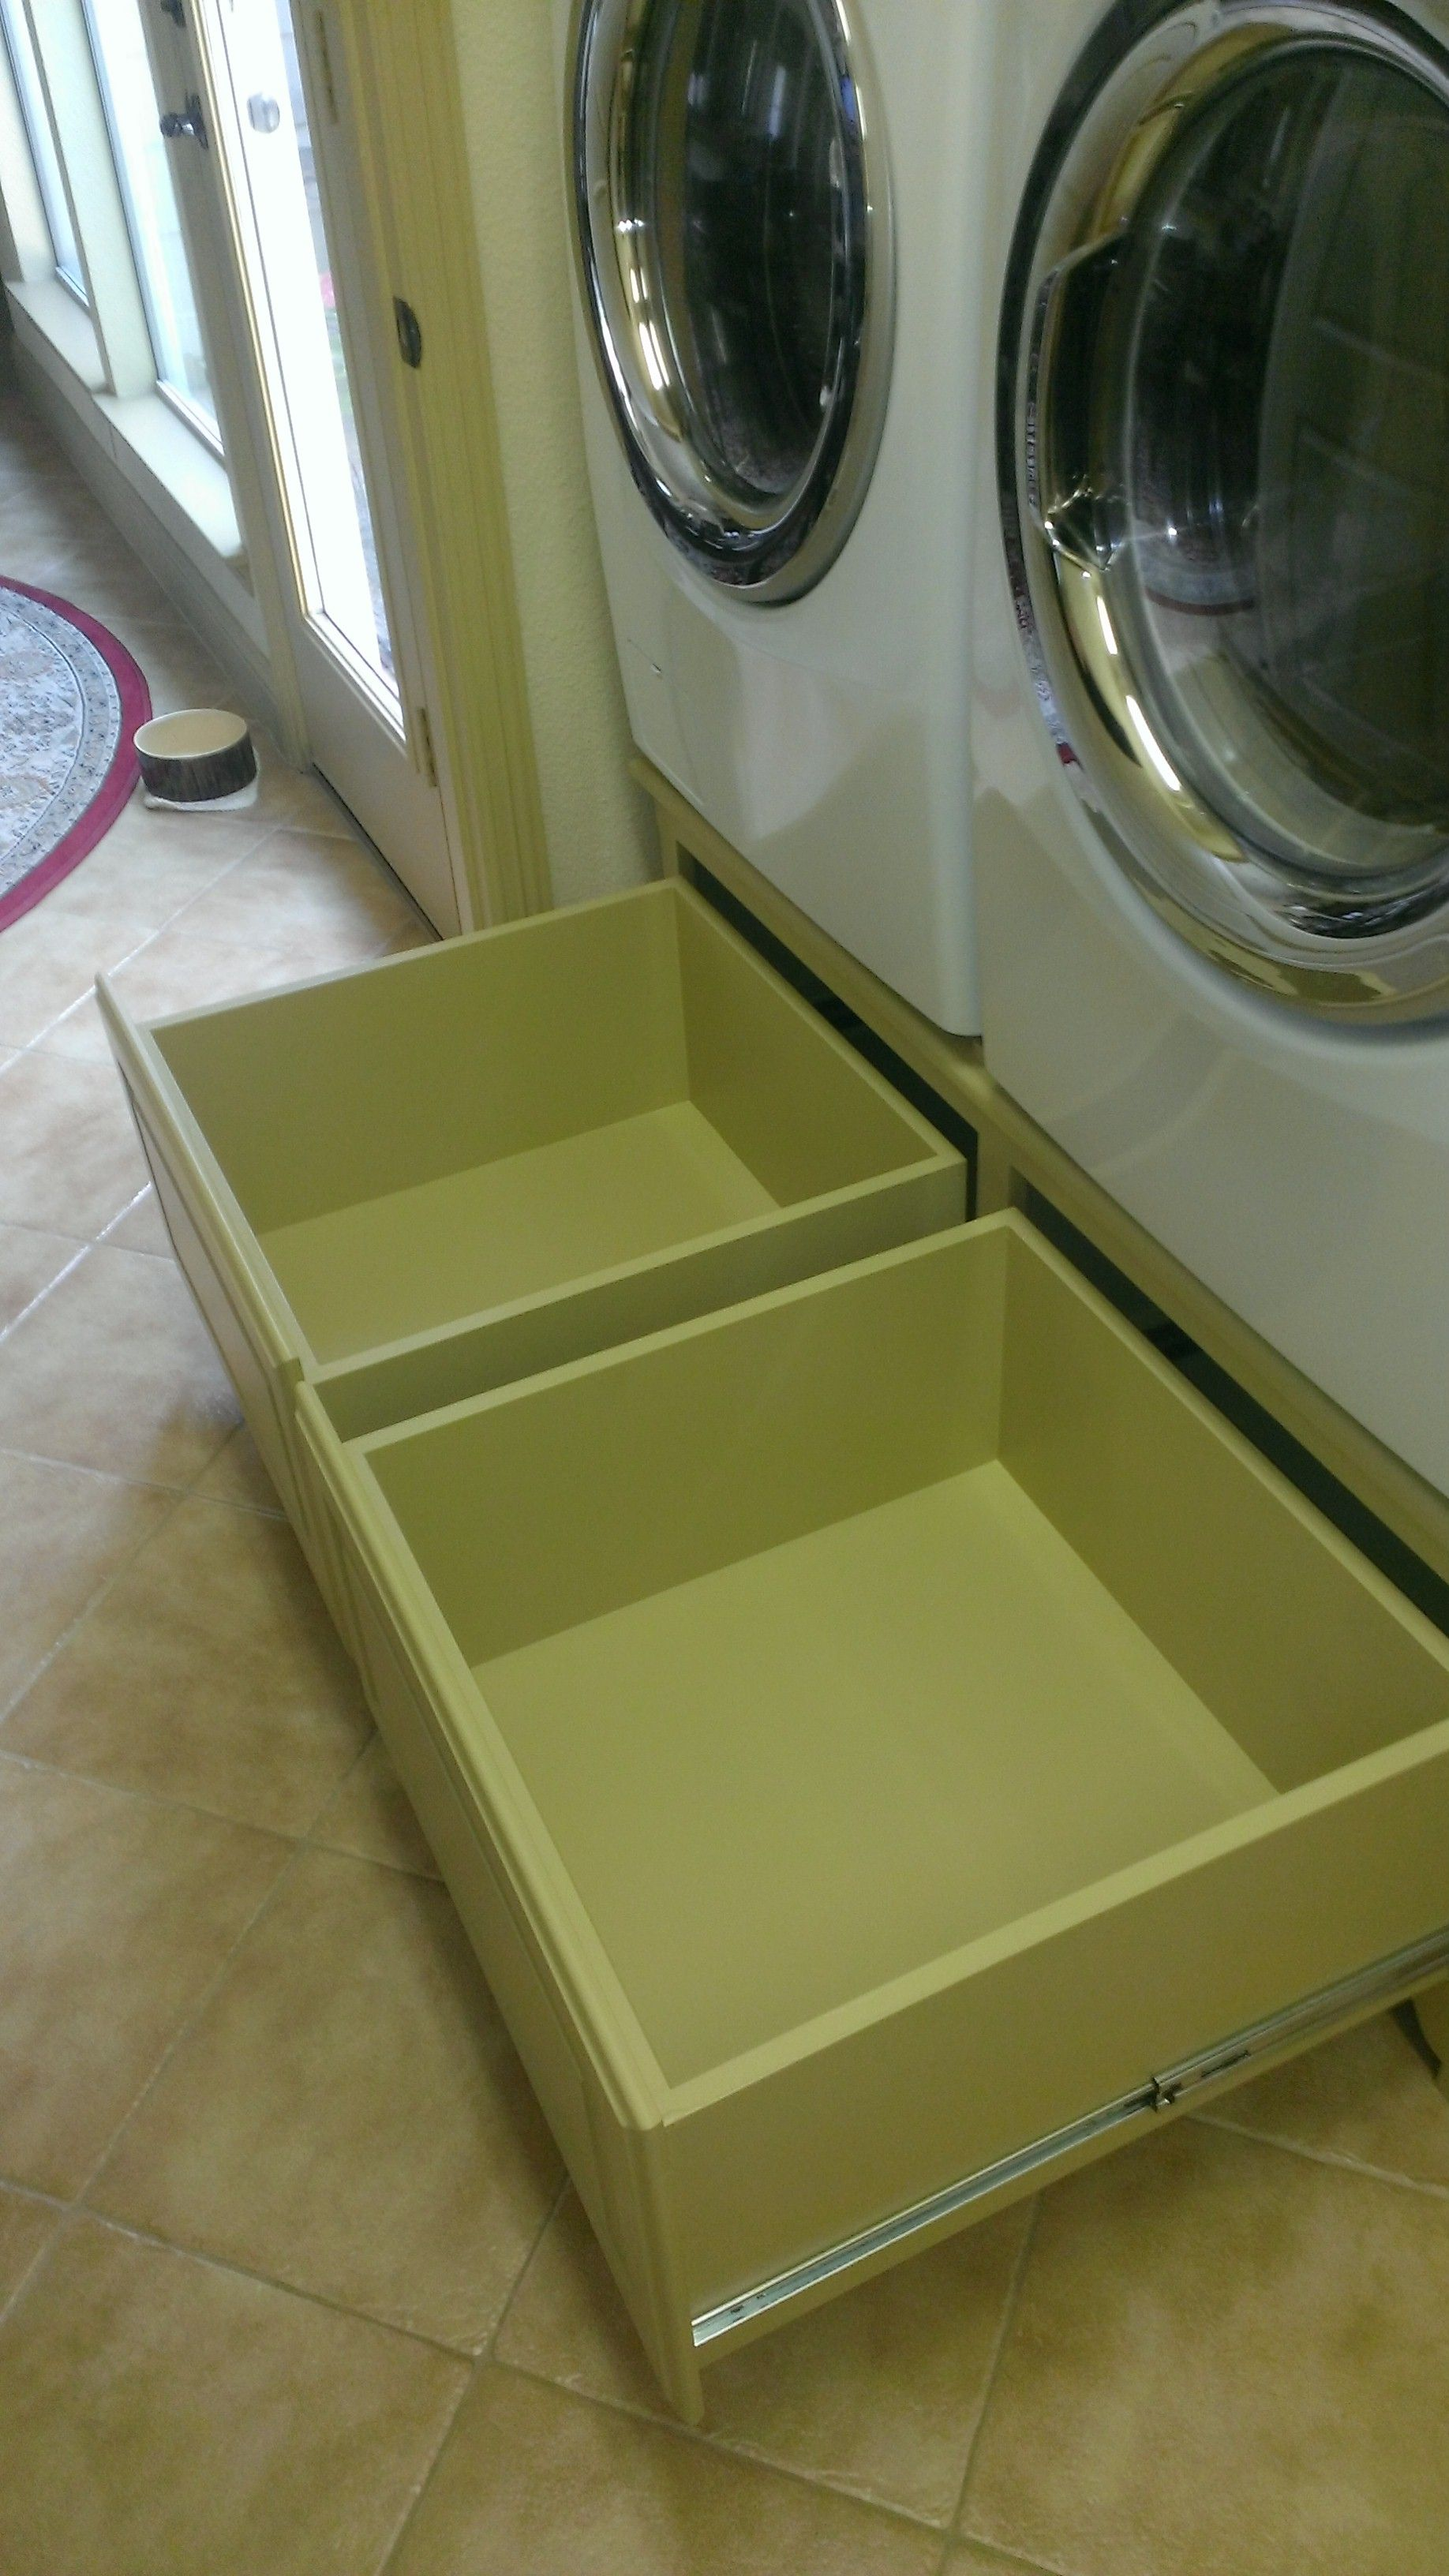 24x24x11 full extension drawers open washer and